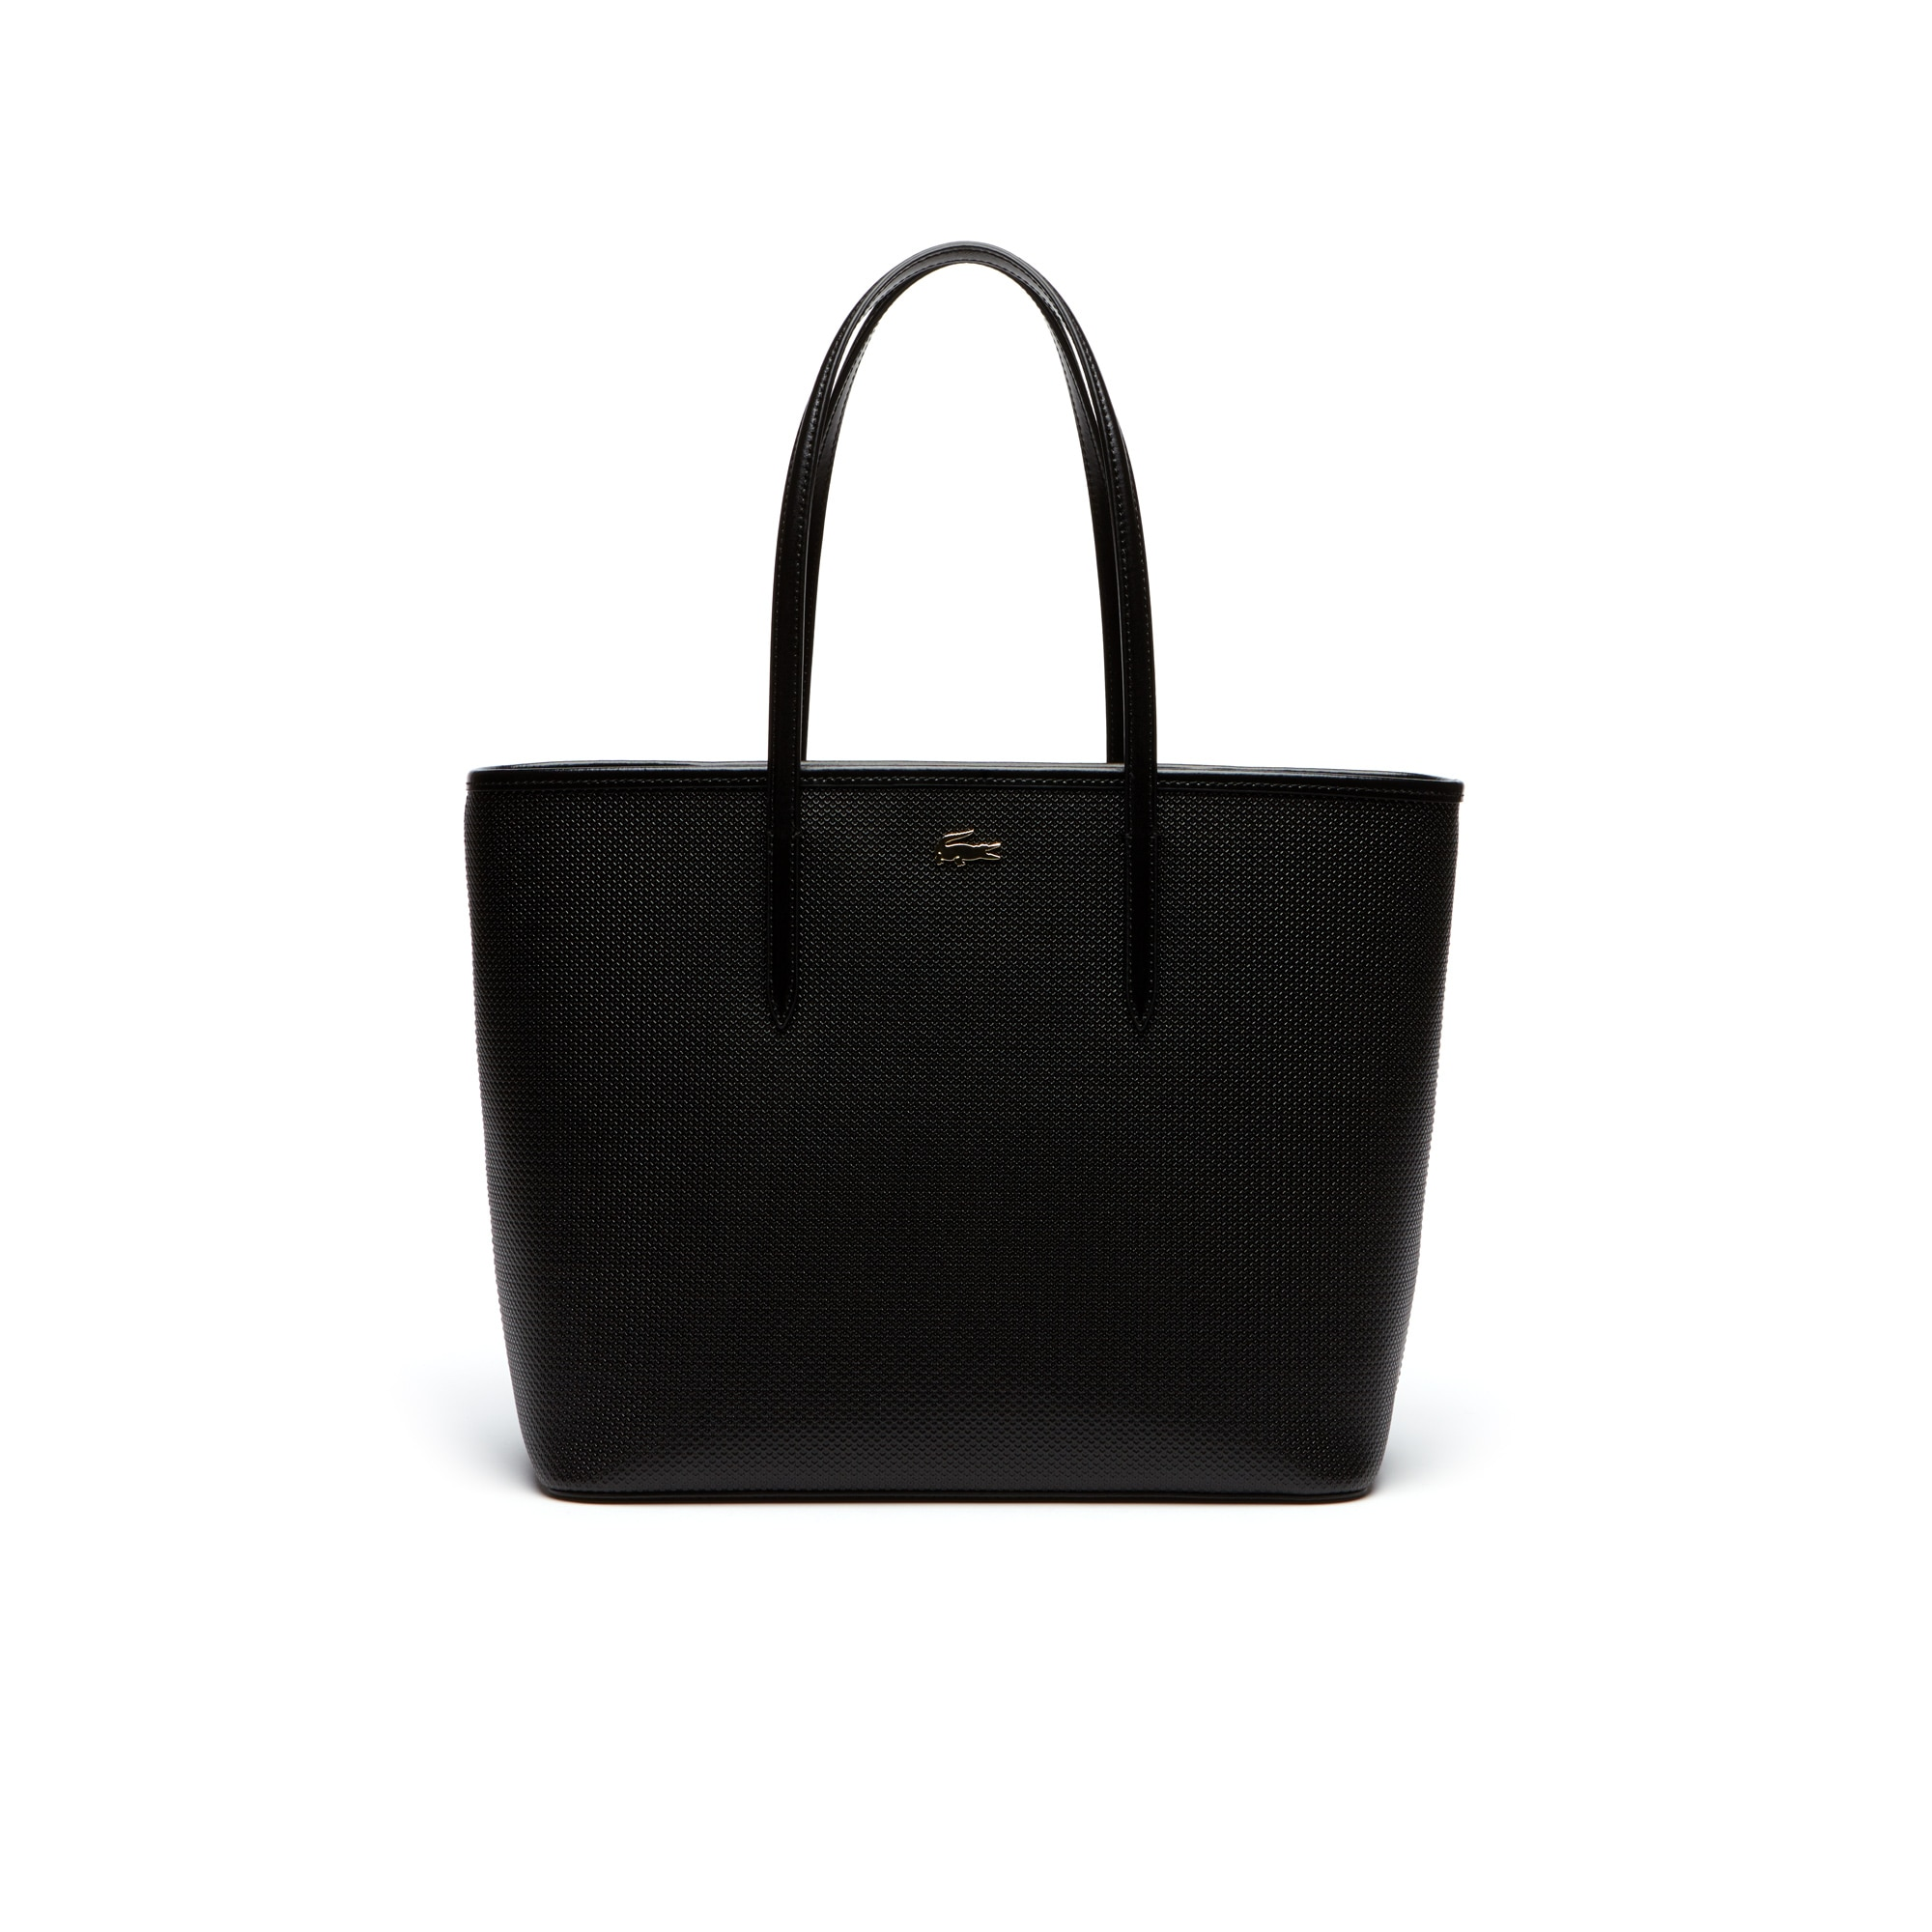 Women's Chantaco Piqué Leather Tote Bag | LACOSTE